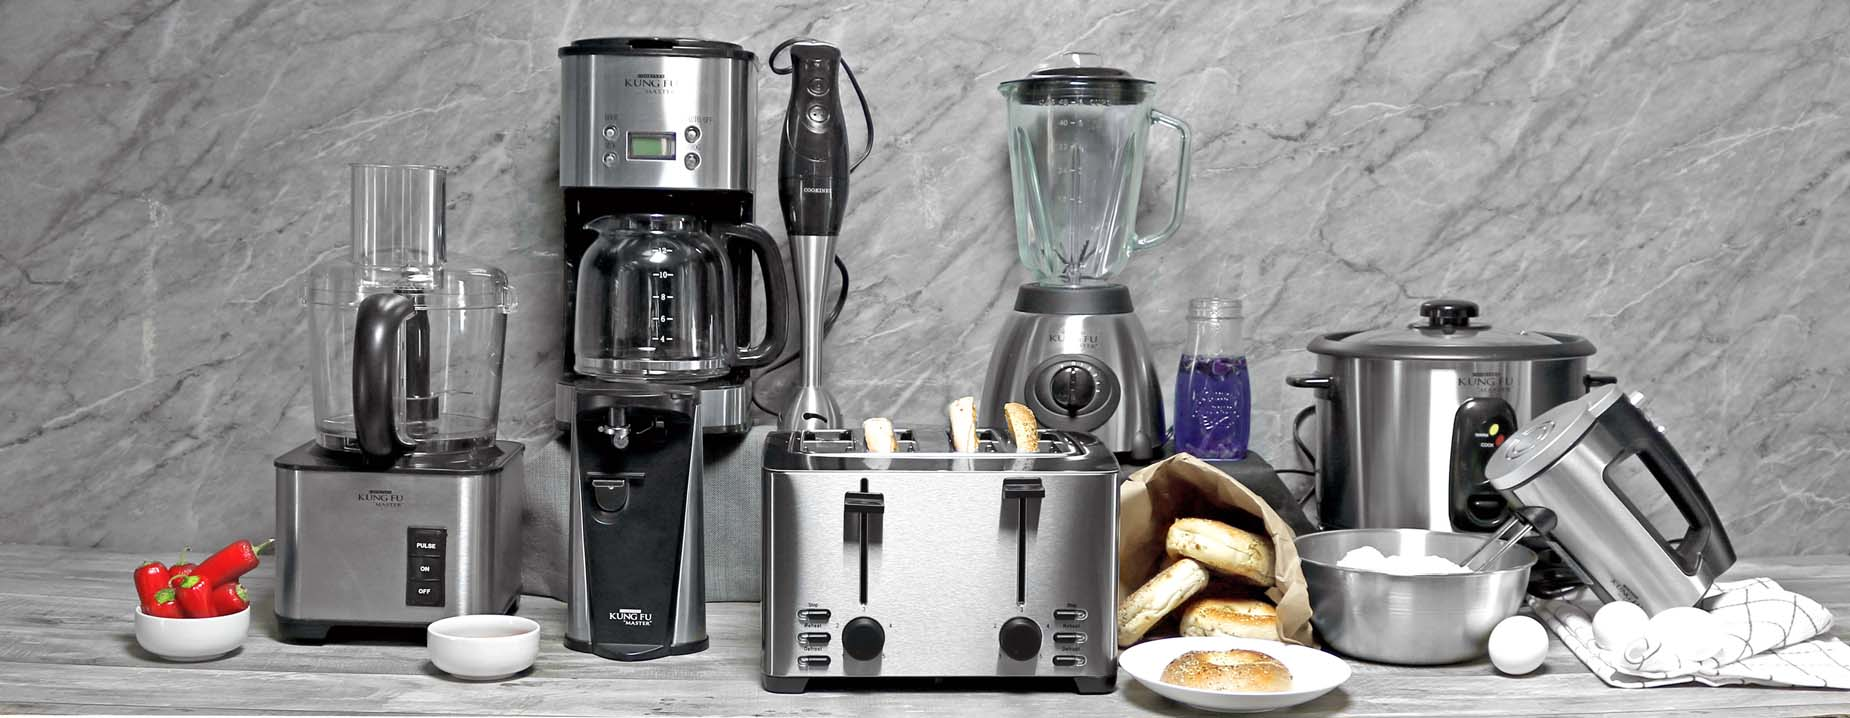 Electric Kitchen Appliances Store Online